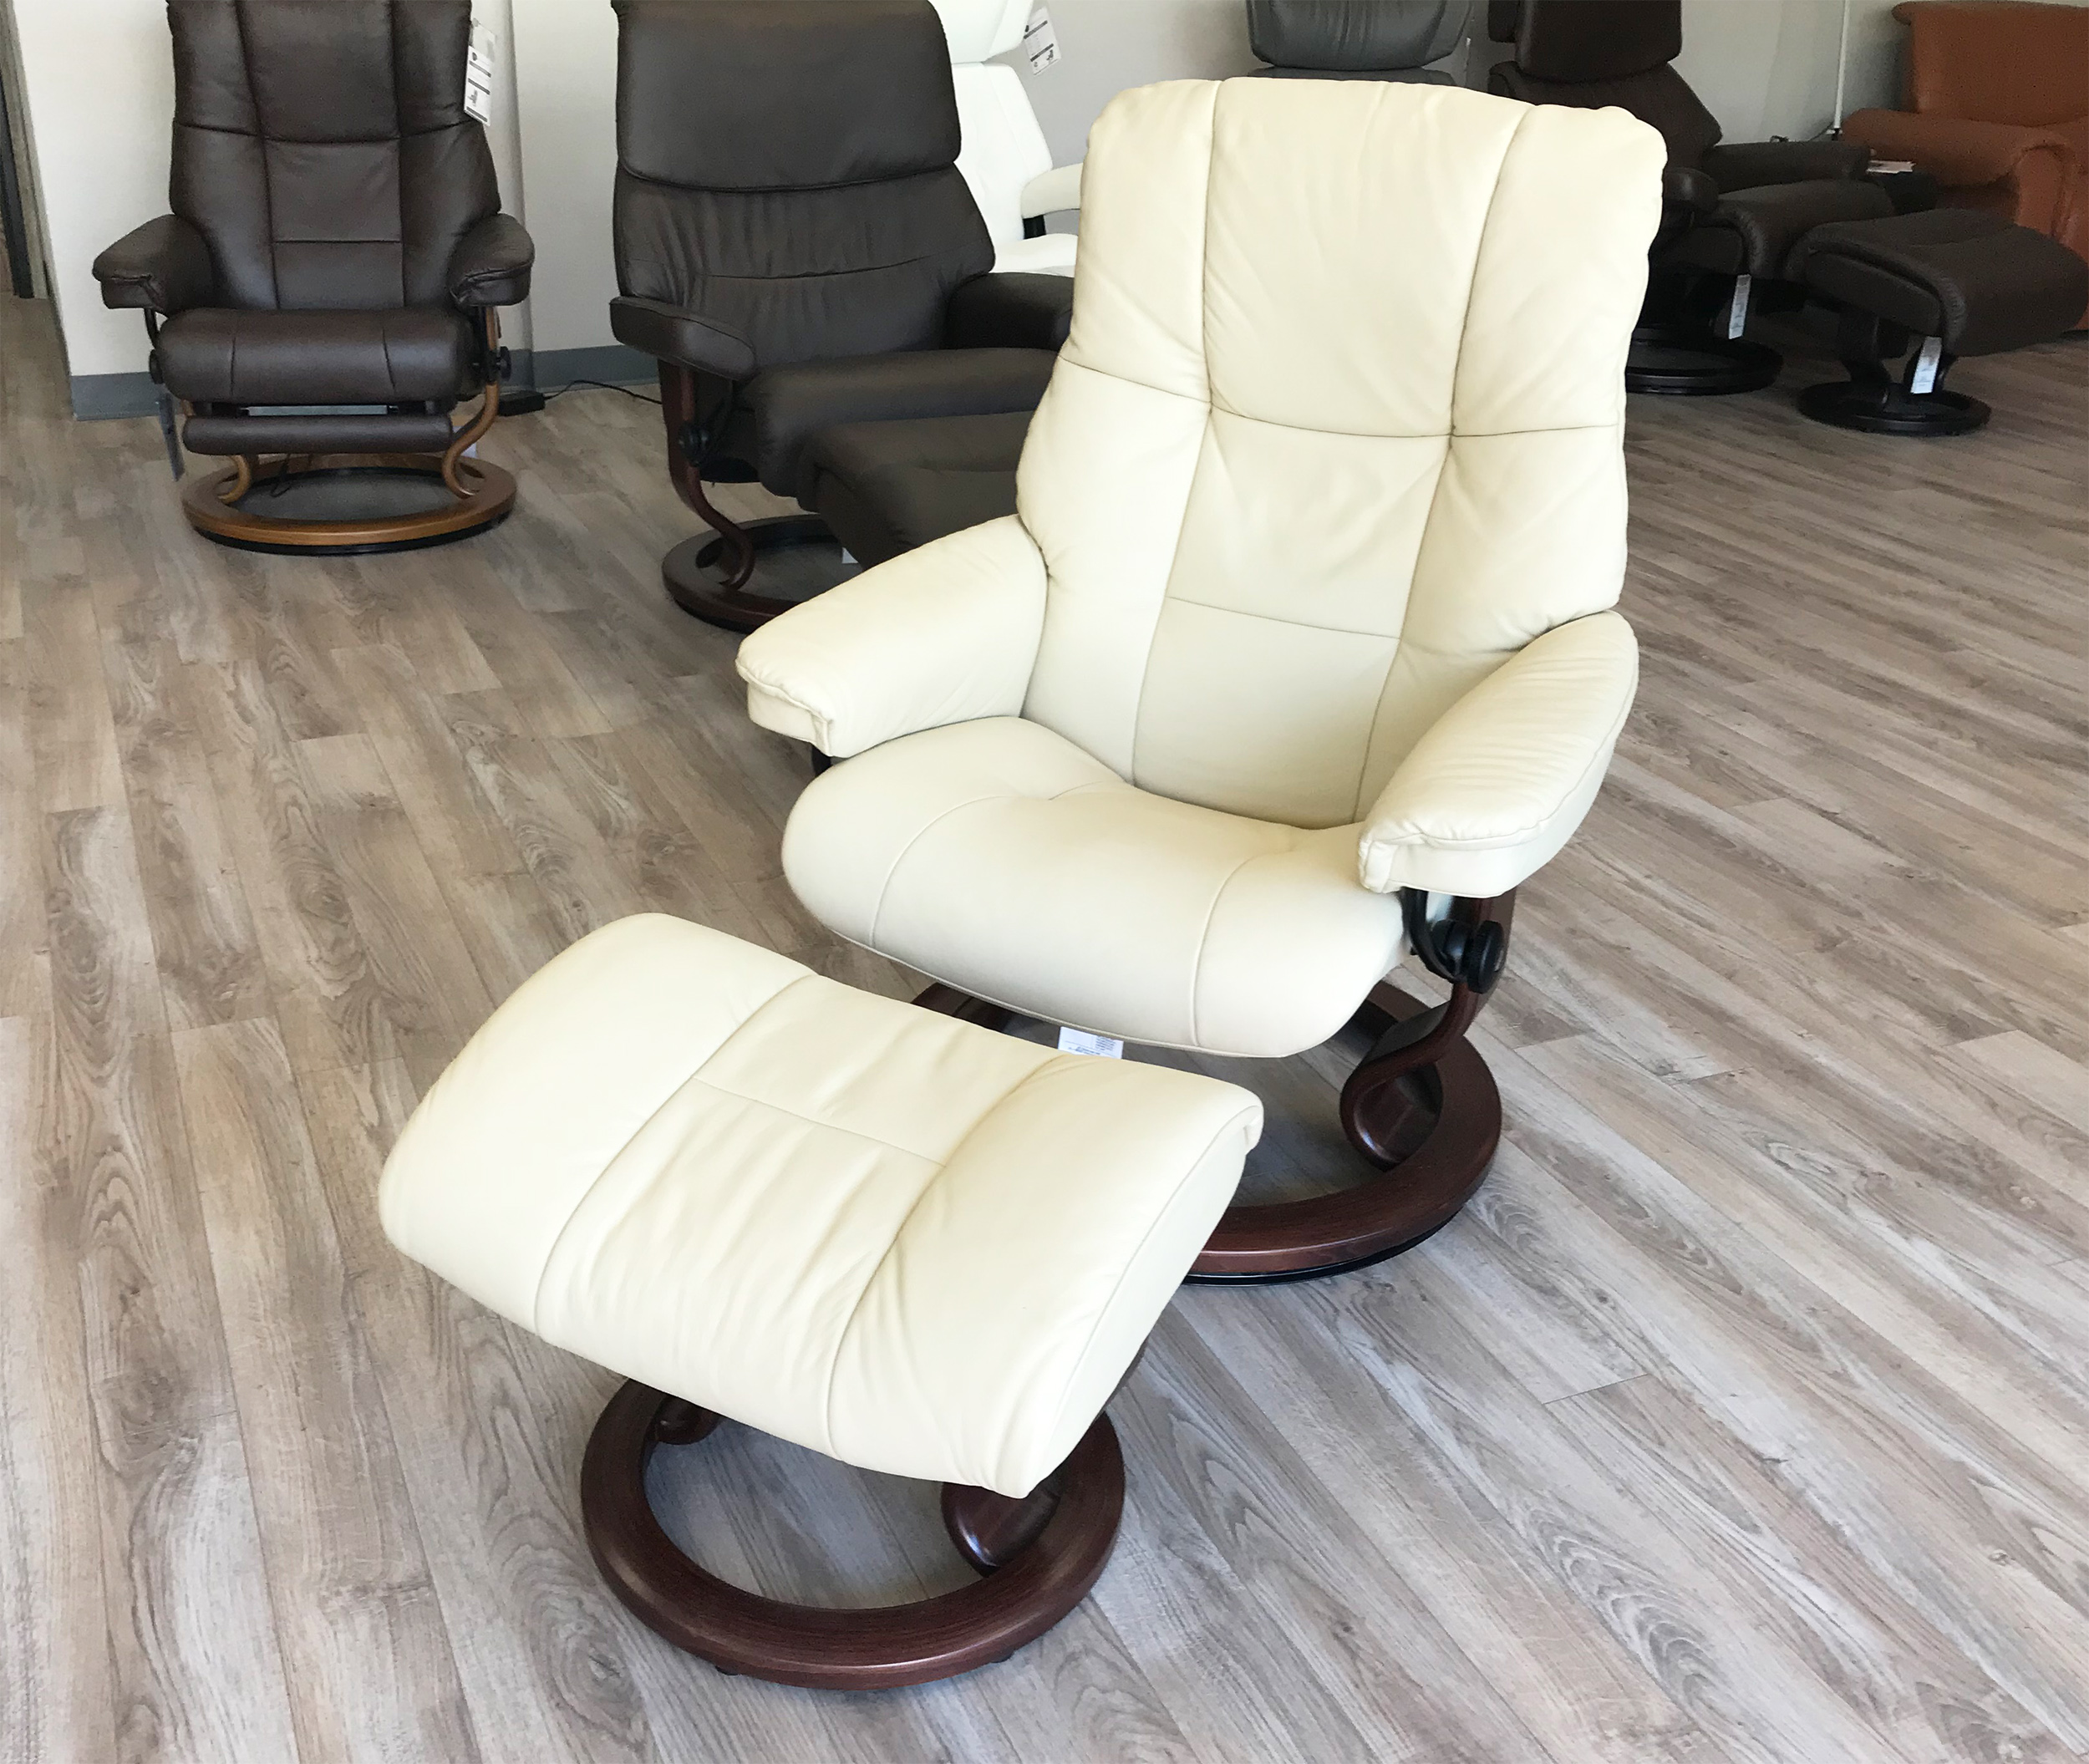 Superb Stressless Chelsea Small Mayfair Paloma Kitt Leather Recliner Chair And Ottoman By Ekornes Gmtry Best Dining Table And Chair Ideas Images Gmtryco